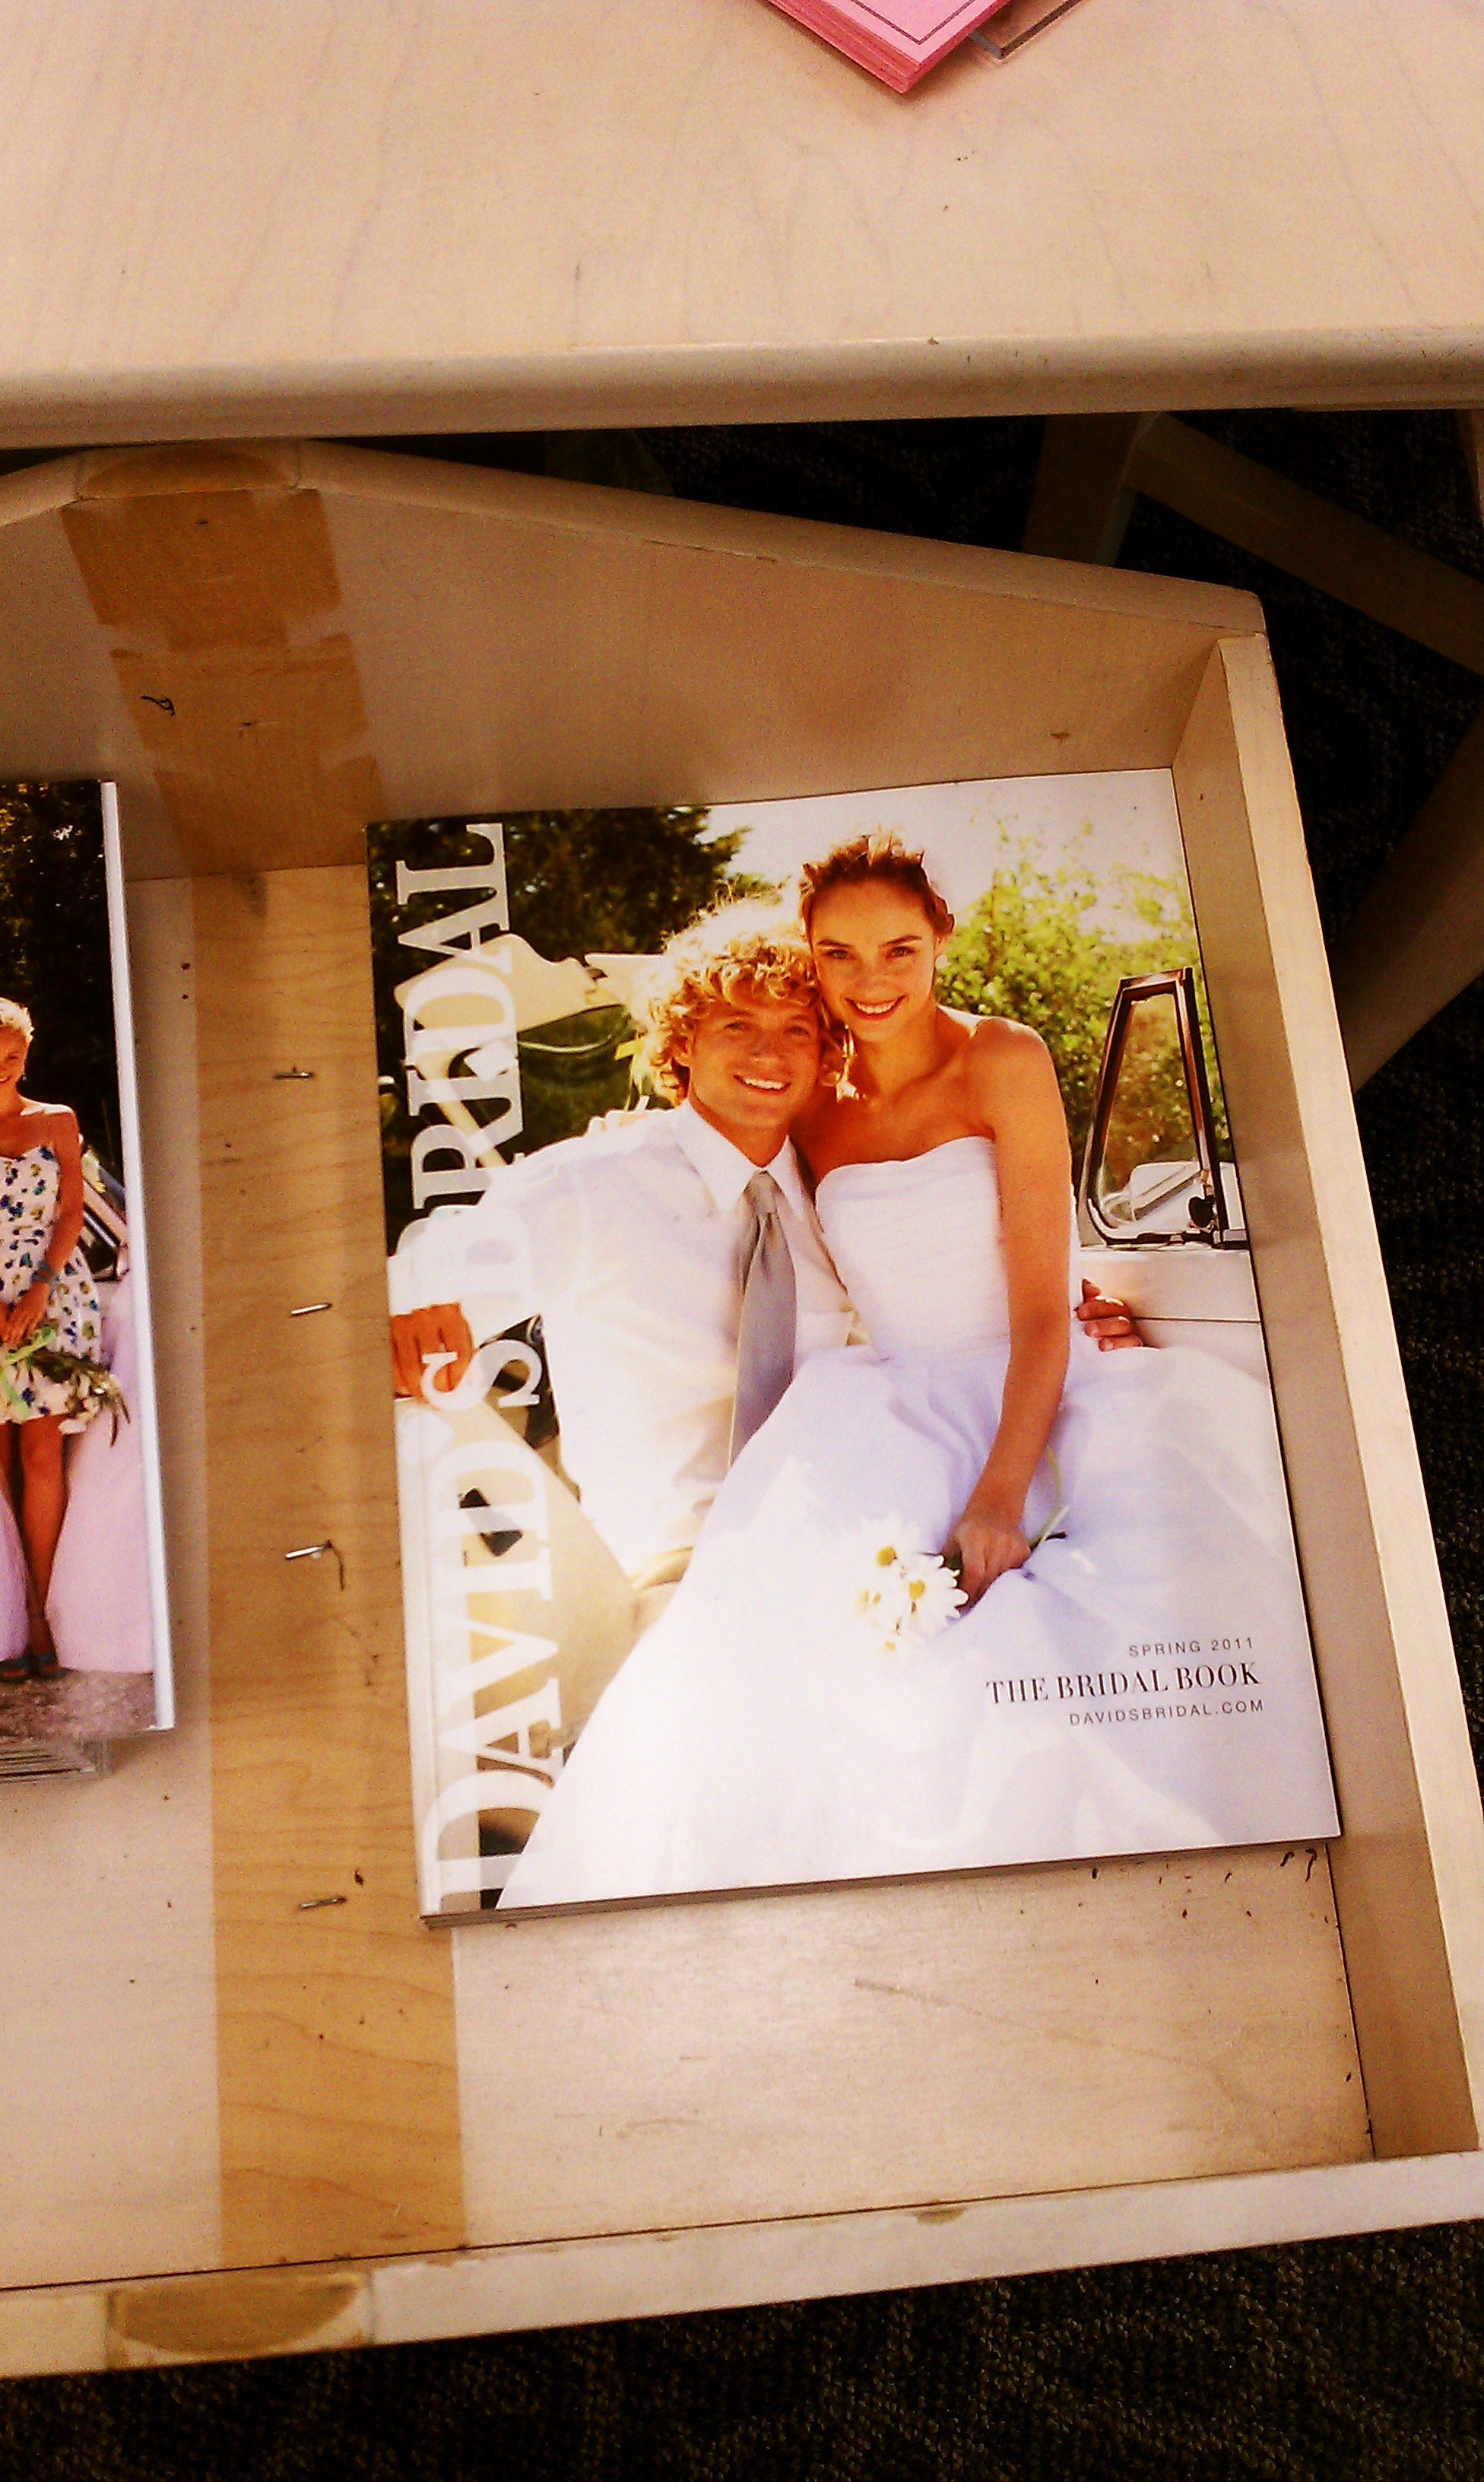 Also, I have to share this picture! When I was dress shopping at David's Bridal, I came across this magazine. Doesn't that guy look so much like Kris? CRAZY!! I have never met anyone who looks anything like Kris, so this was way funny to me, especially the timing!